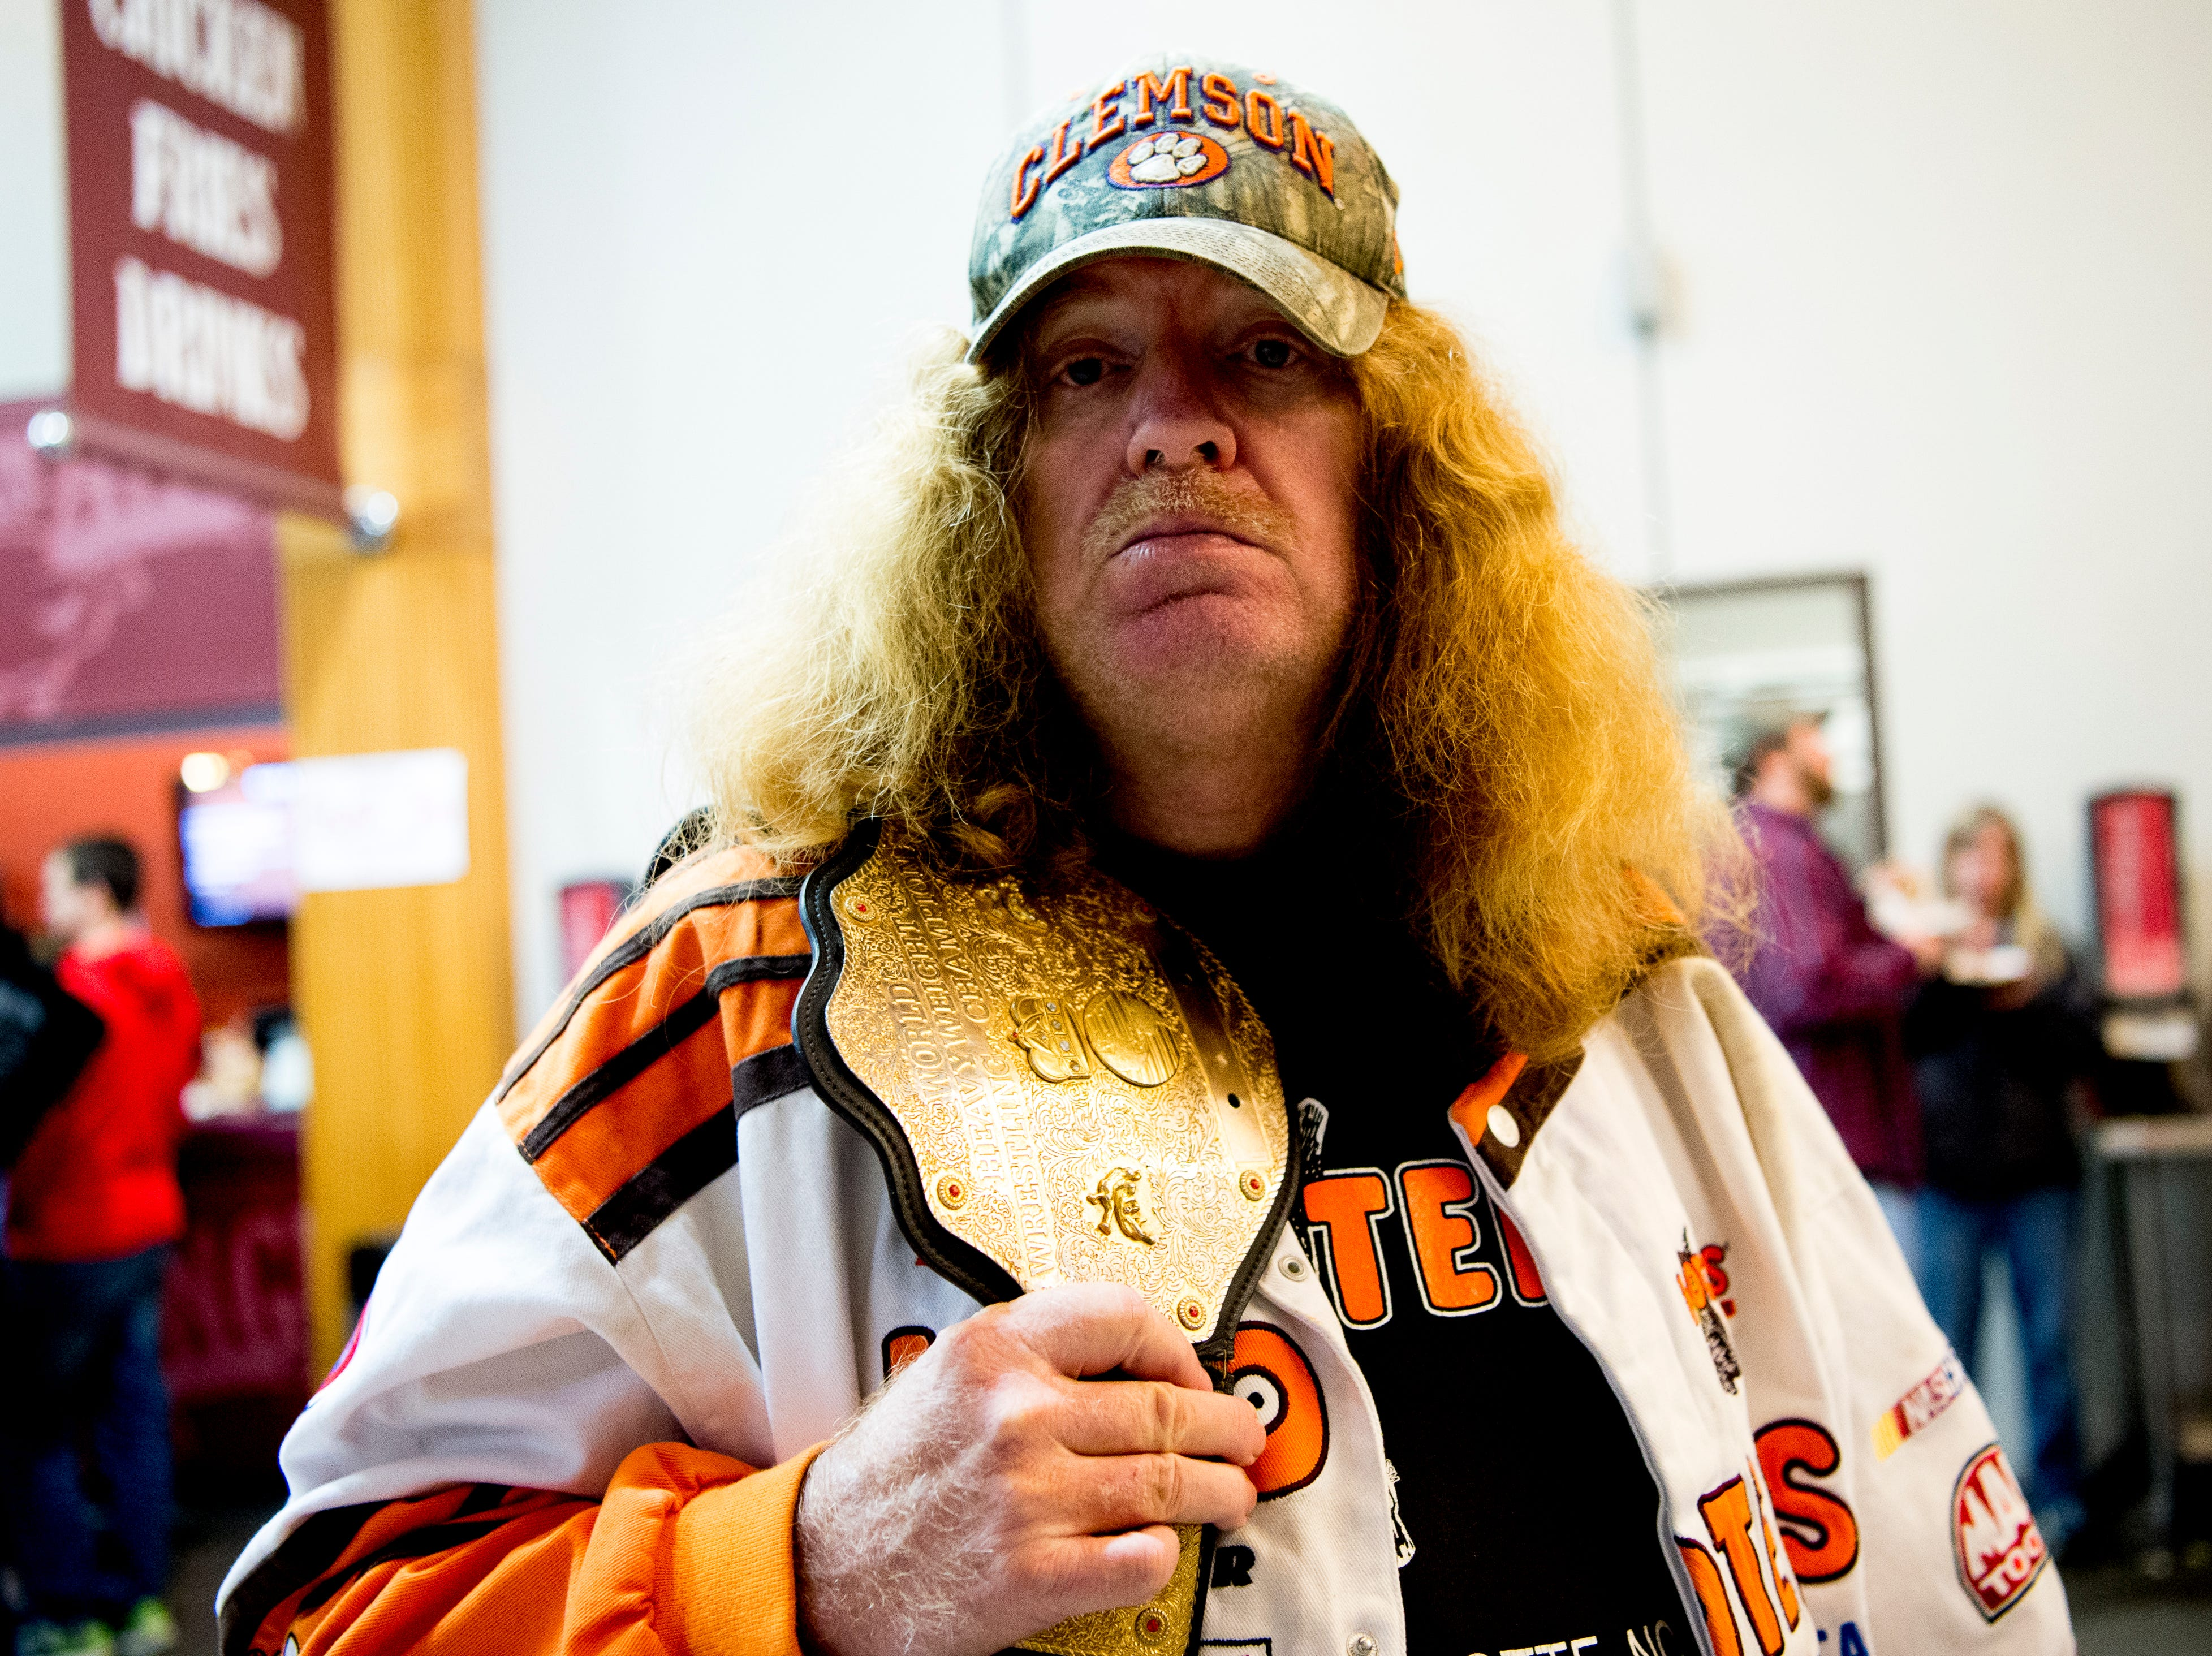 WWE fan David Arlington, of Asheville, poses for a photo during a WWE Live performance at the Knoxville Civic Coliseum in Knoxville, Tennessee on Saturday, January 12, 2019. Arlington said he watches every televised match, and if he can't watch it, he tapes it to watch later.*KNOXVILLE NEWS SENTINEL USE ONLY*